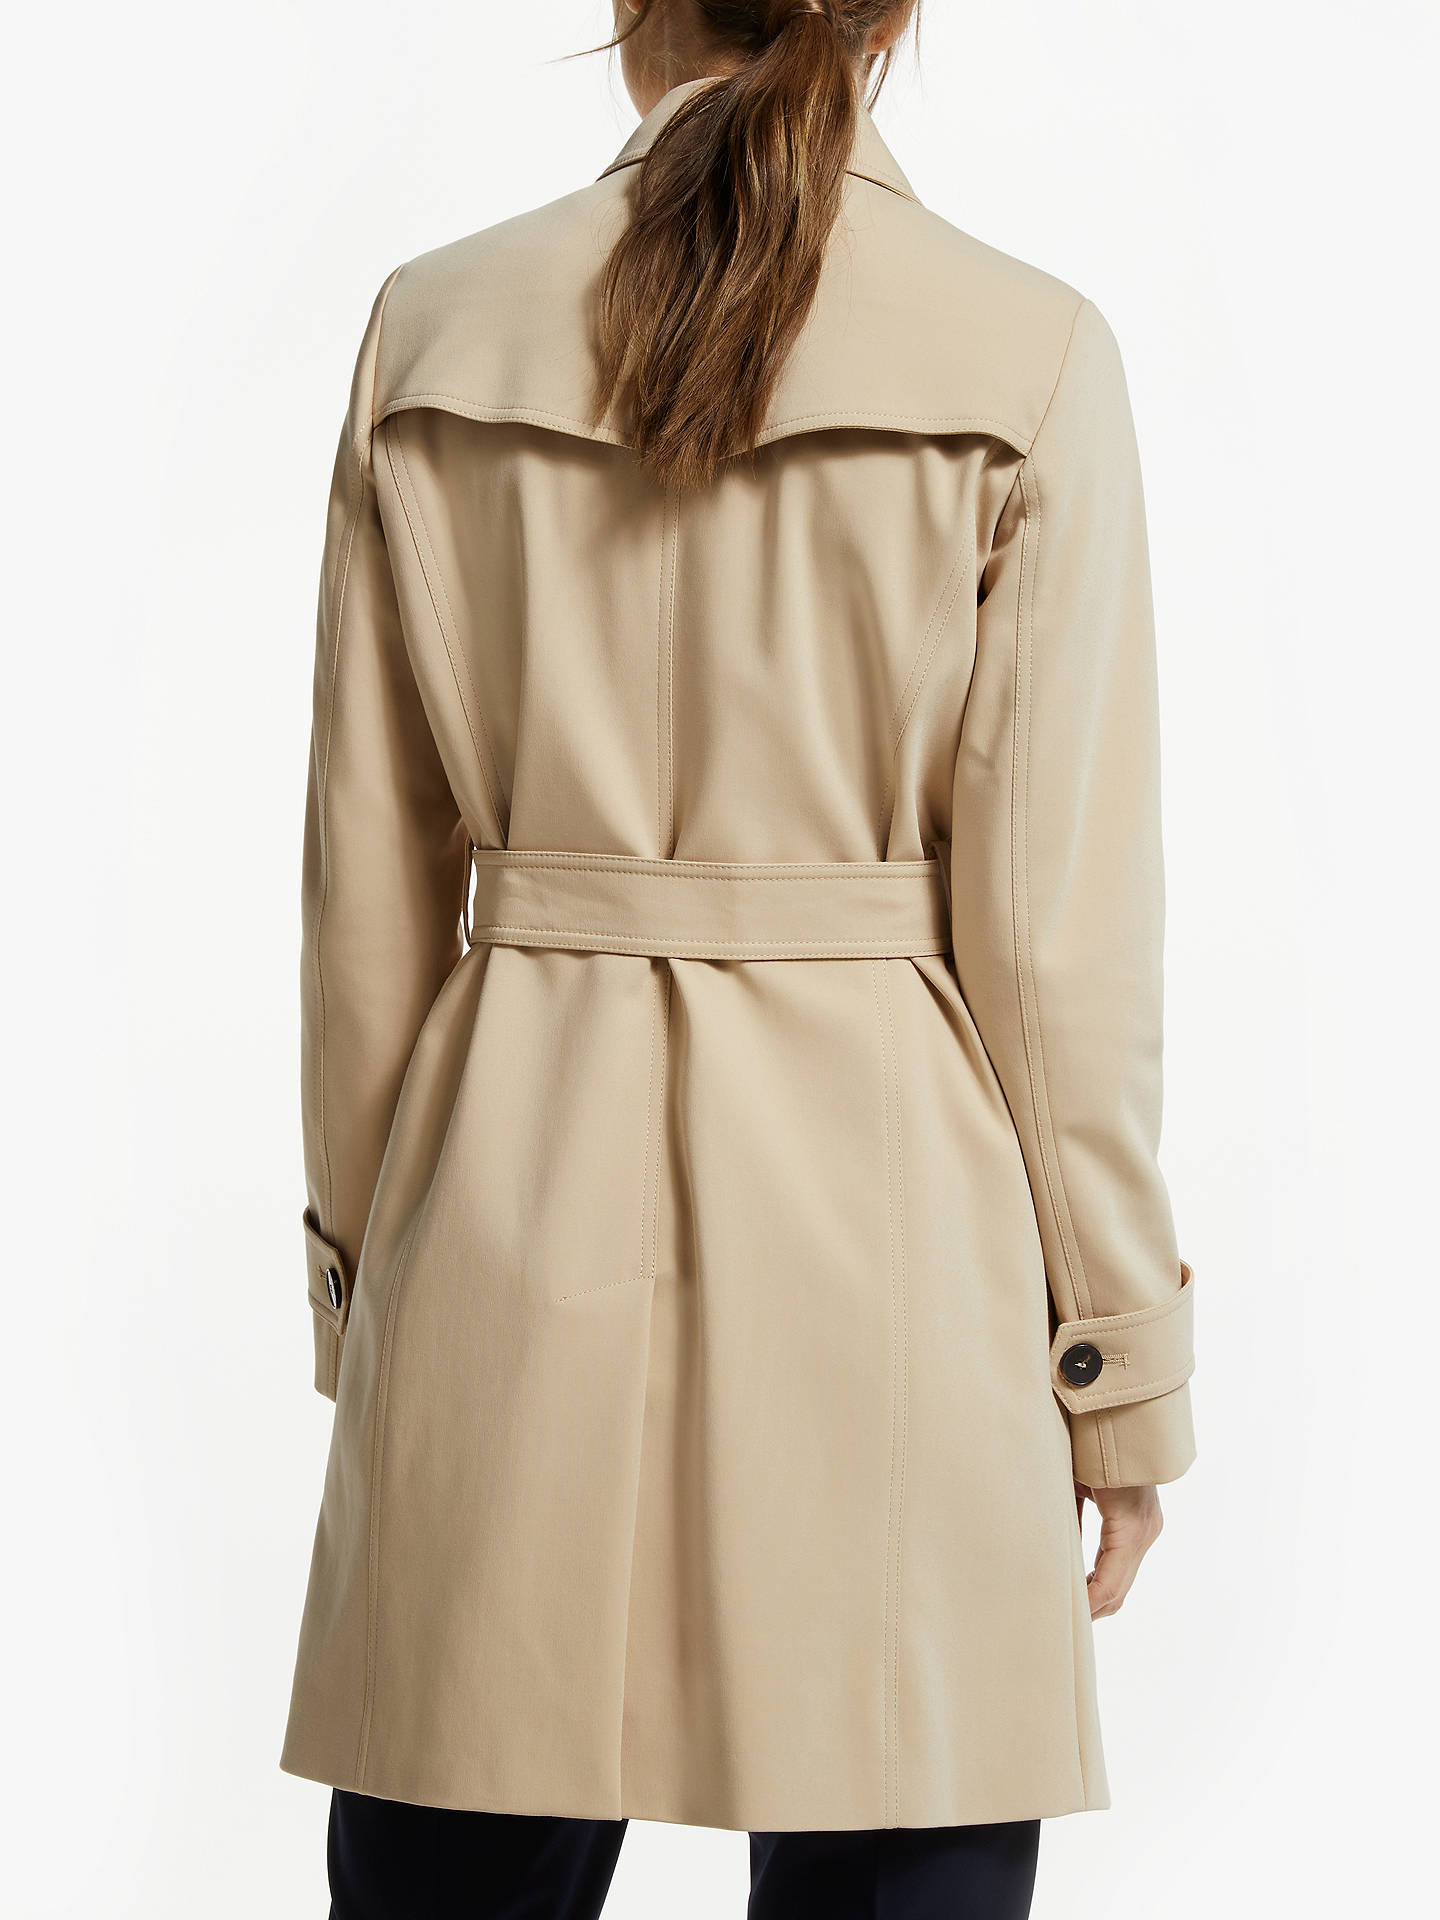 020831f61e ... Buy Marella Razza Trench Raincoat, Camel, 8 Online at johnlewis.com ...